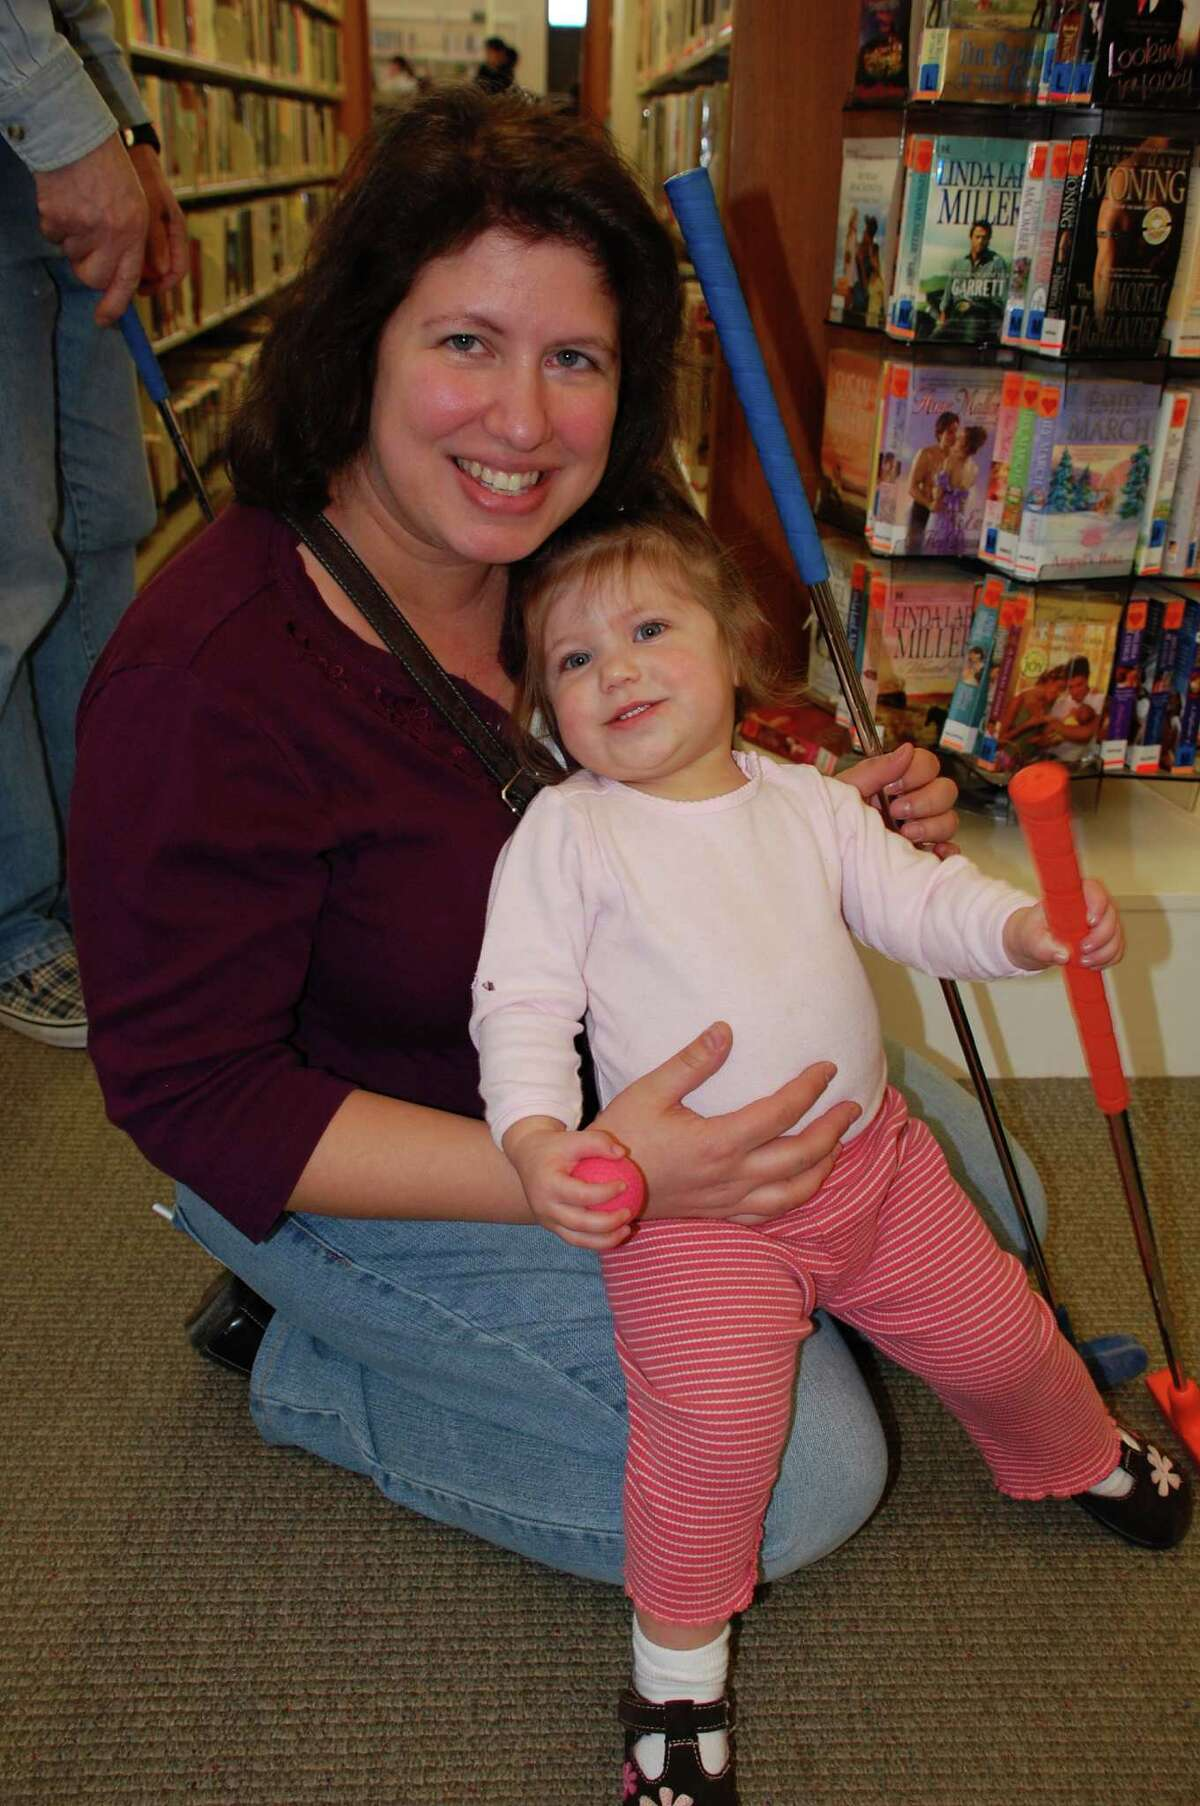 Gail Lacugna of Fairfield and her daughter, Lily, 17 months, enjoy a mini day of golf Sunday at the Fairfield Woods Branch Library. FAIRFIELD CITIZEN, CT 3/3/13